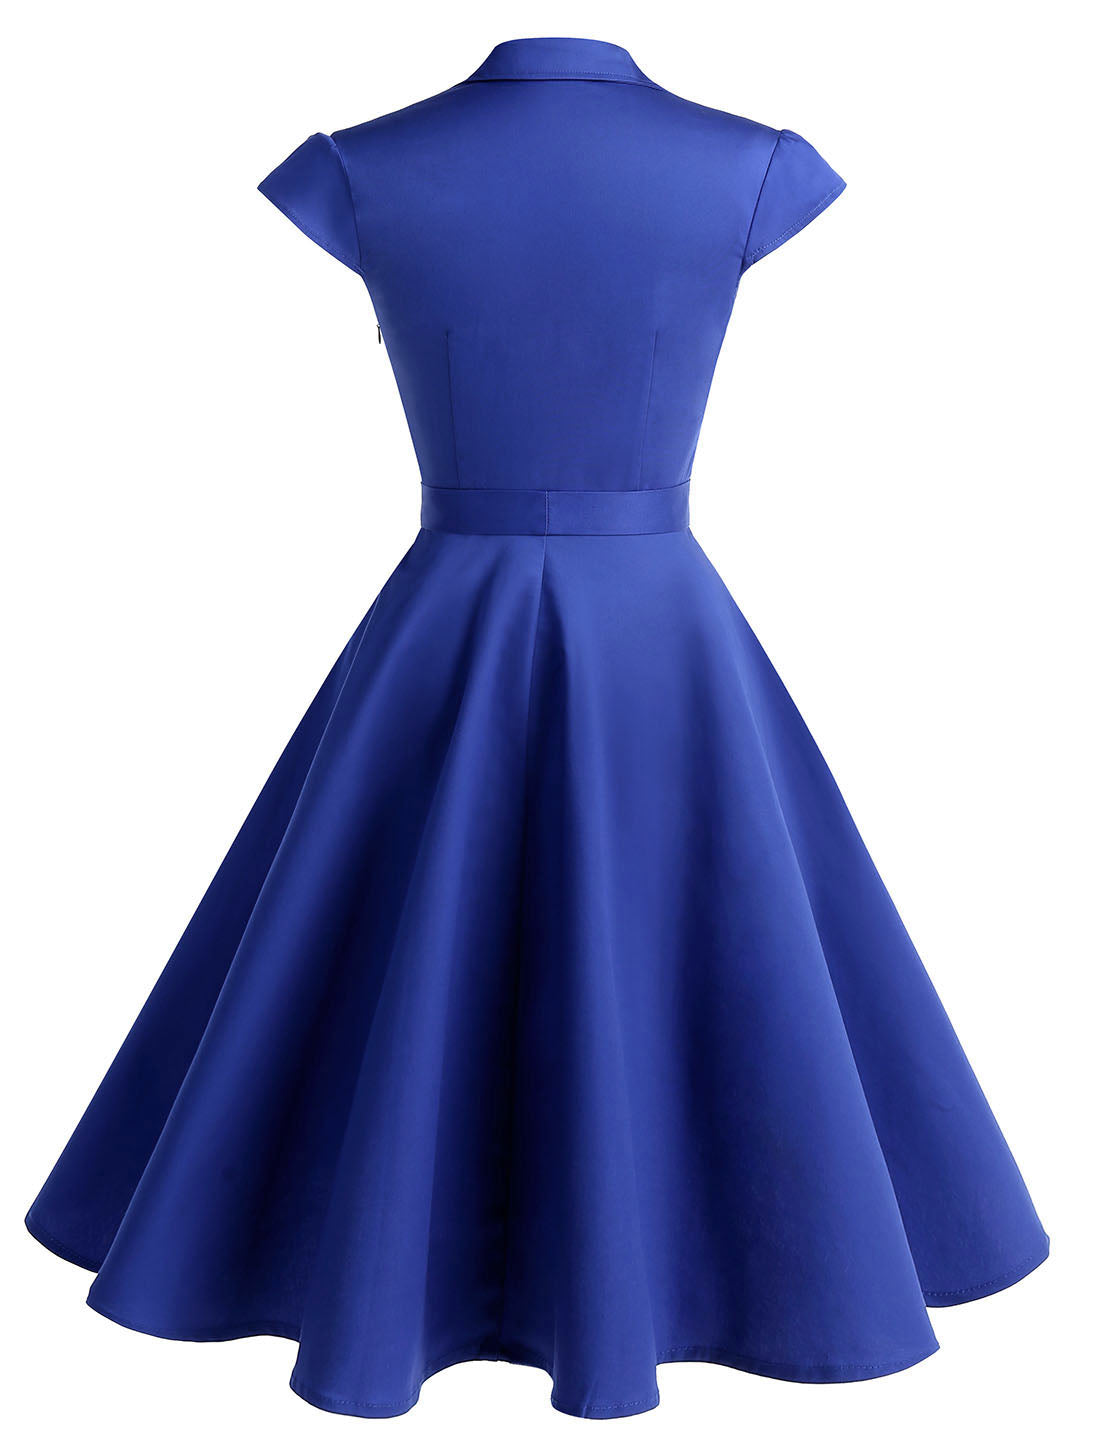 Wedtrend Women's 1950s Retro Rockabilly Dress Cap Sleeve Vintage Swing Dress Navy Royal Blue Color